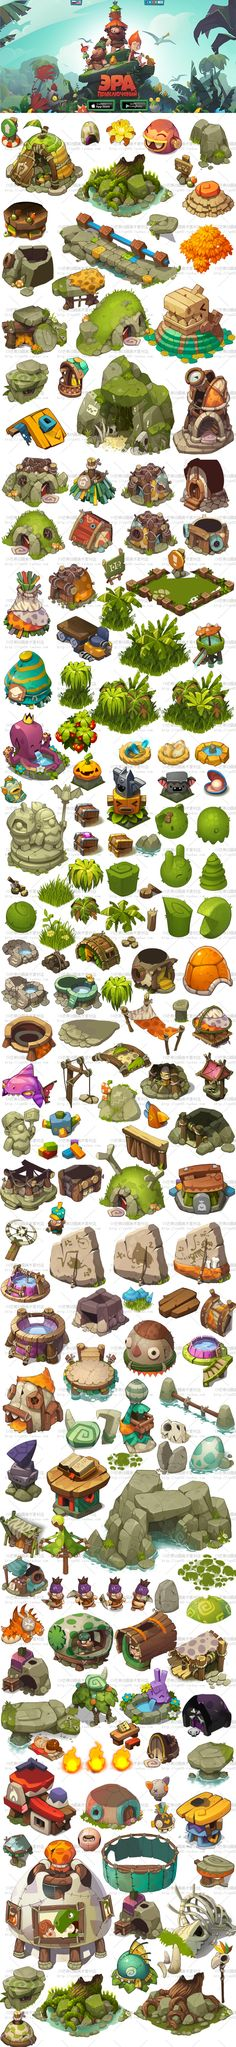 Game art UI environment concept art t Game Design, Prop Design, Web Design, Game Environment, Environment Concept, Environment Design, Art Isométrique, Pixel Art, Paint Photoshop